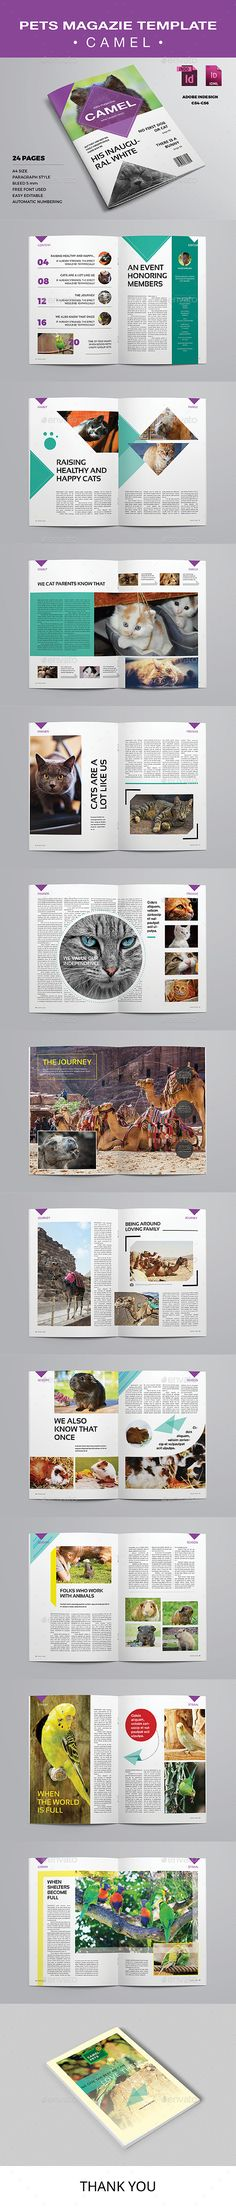 Pets Magazine Template - Camel